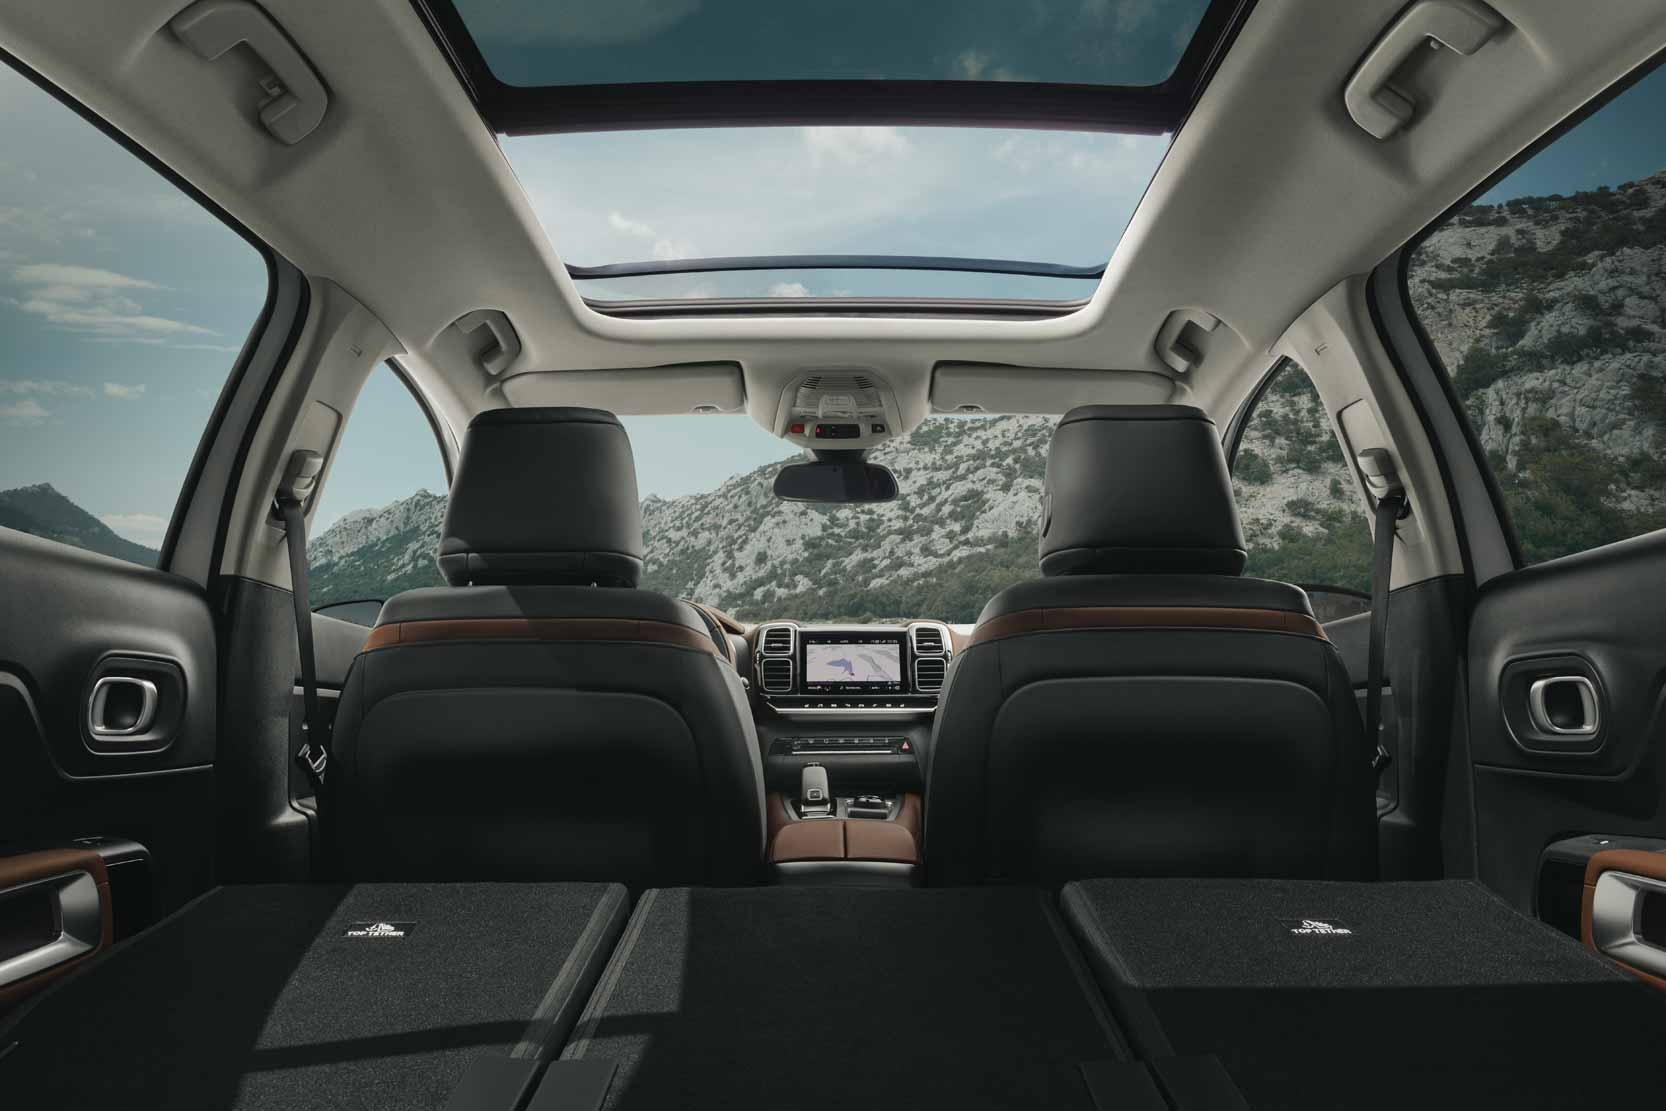 Interieur_Citroen-C5-Aircross-2018_16